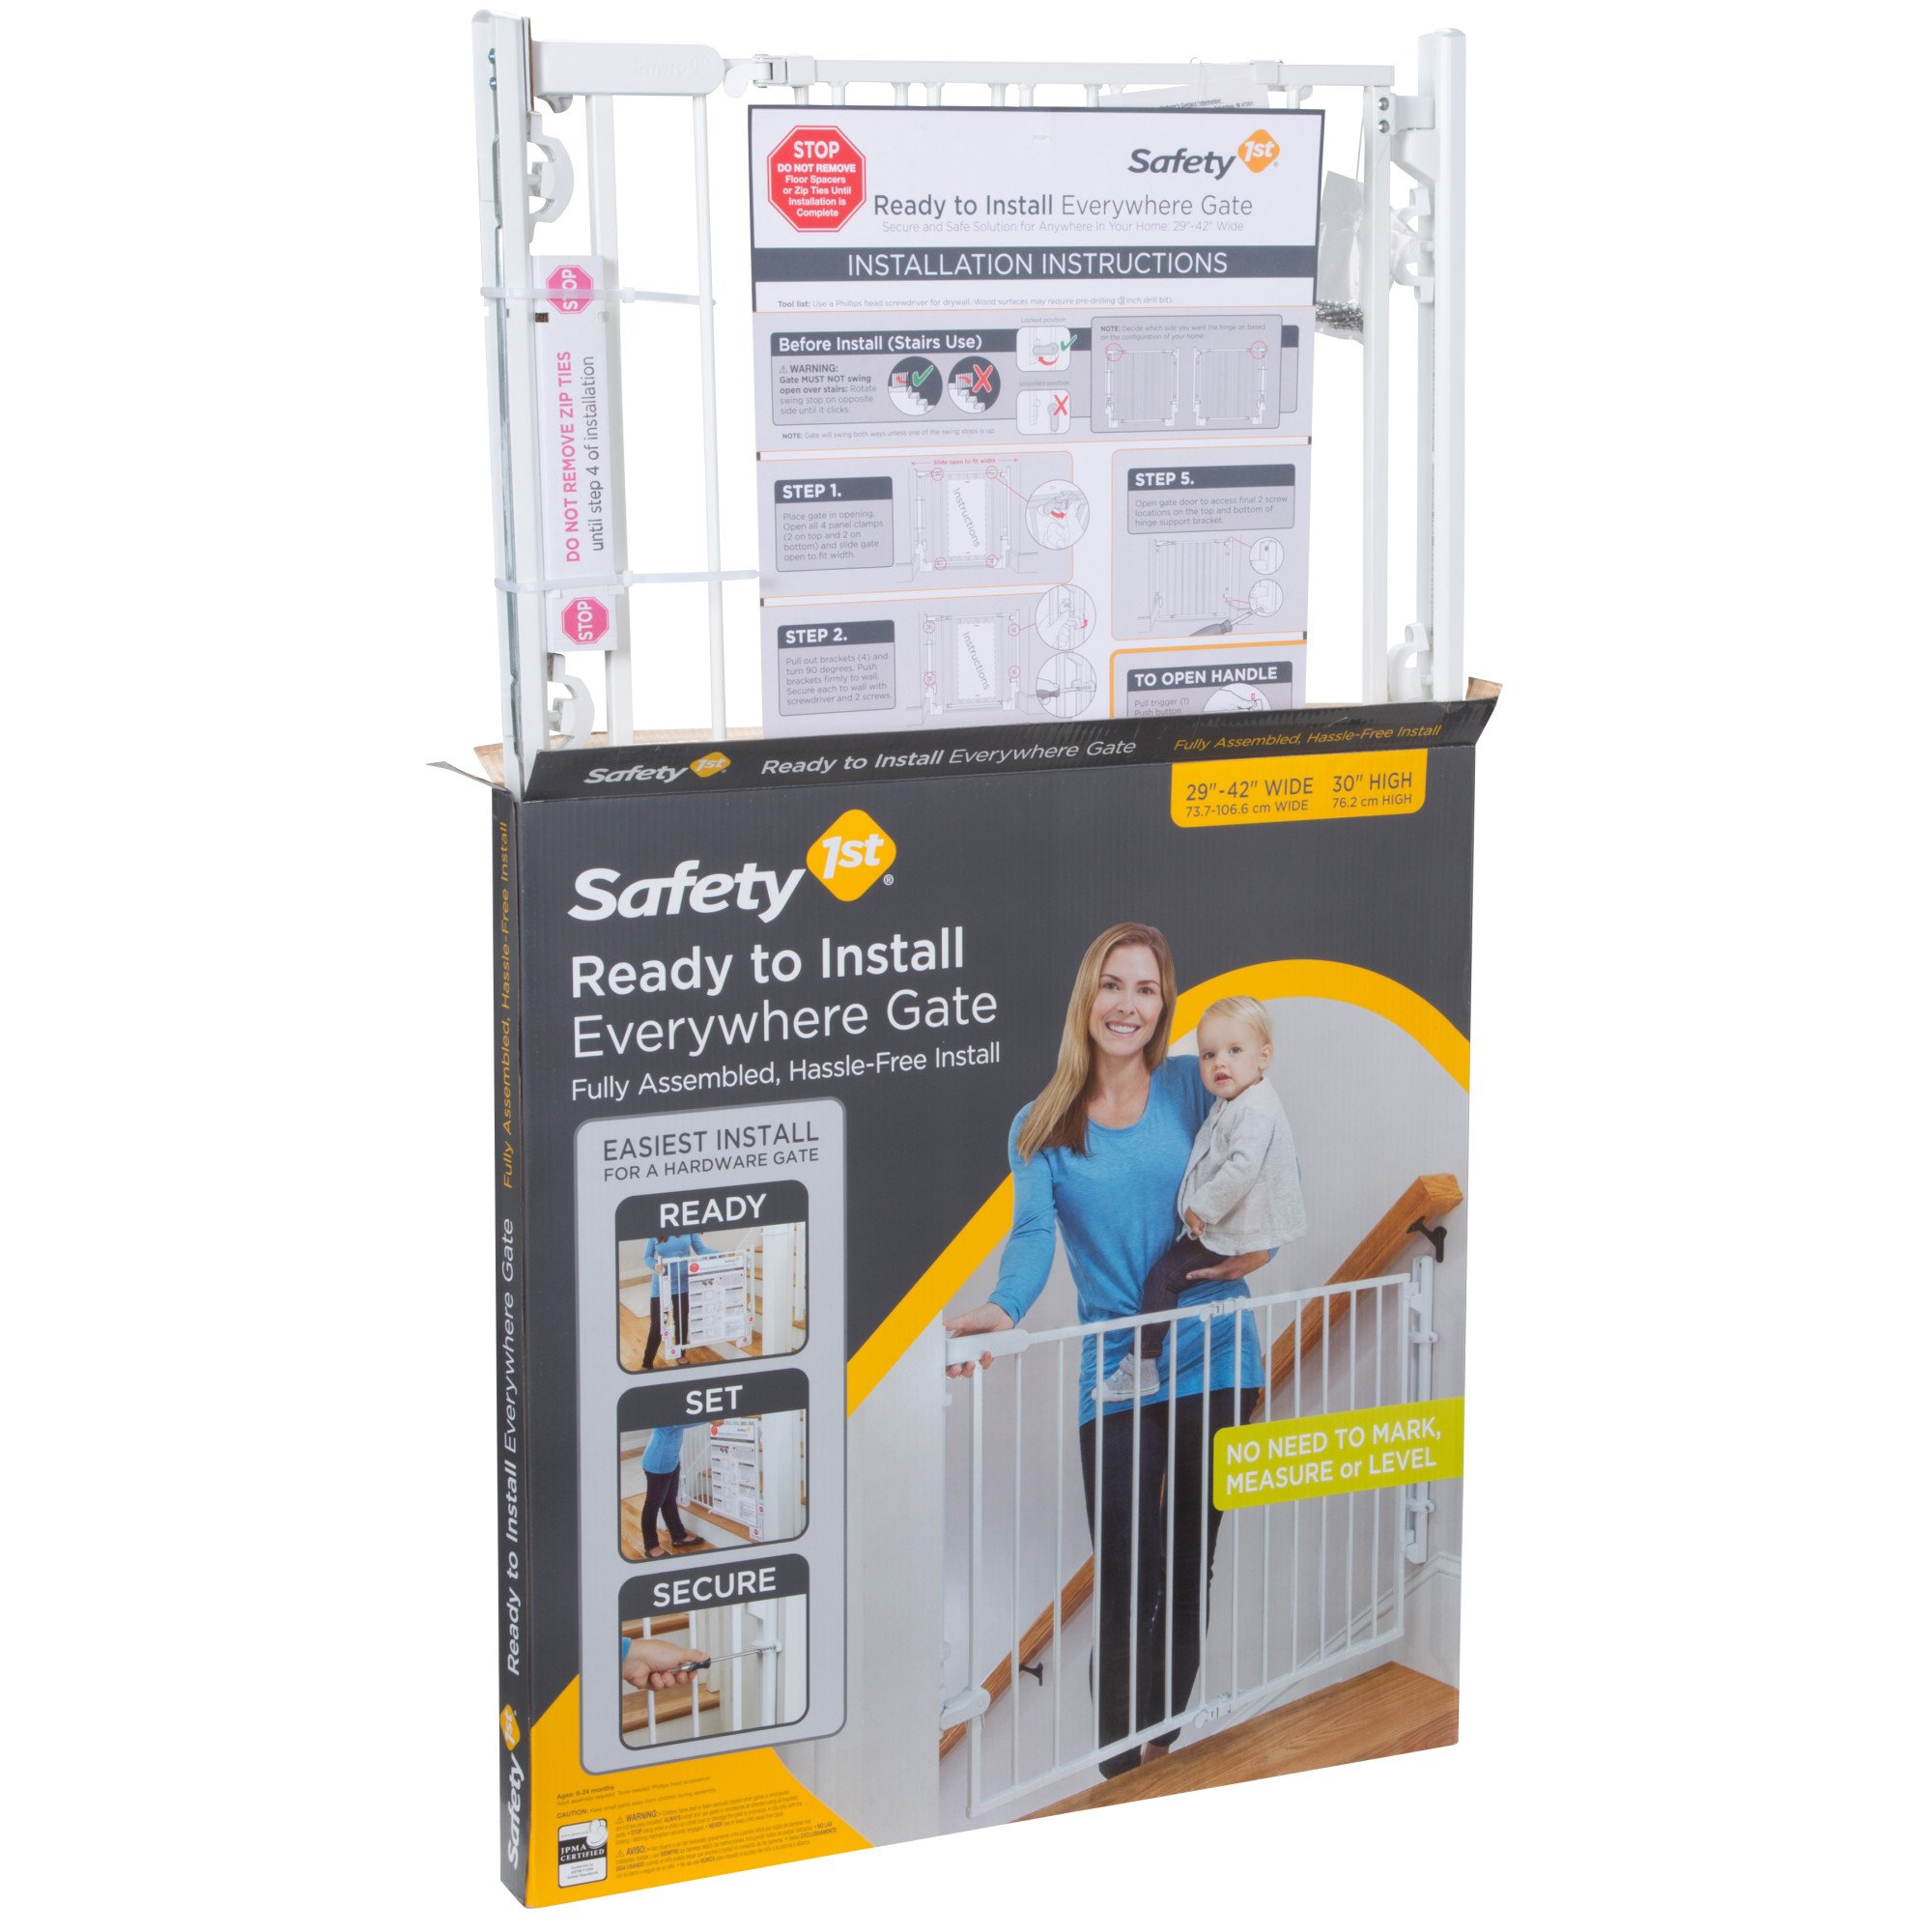 Safety 1st Ready to Install Gate, White by Safety 1st (Image #3)